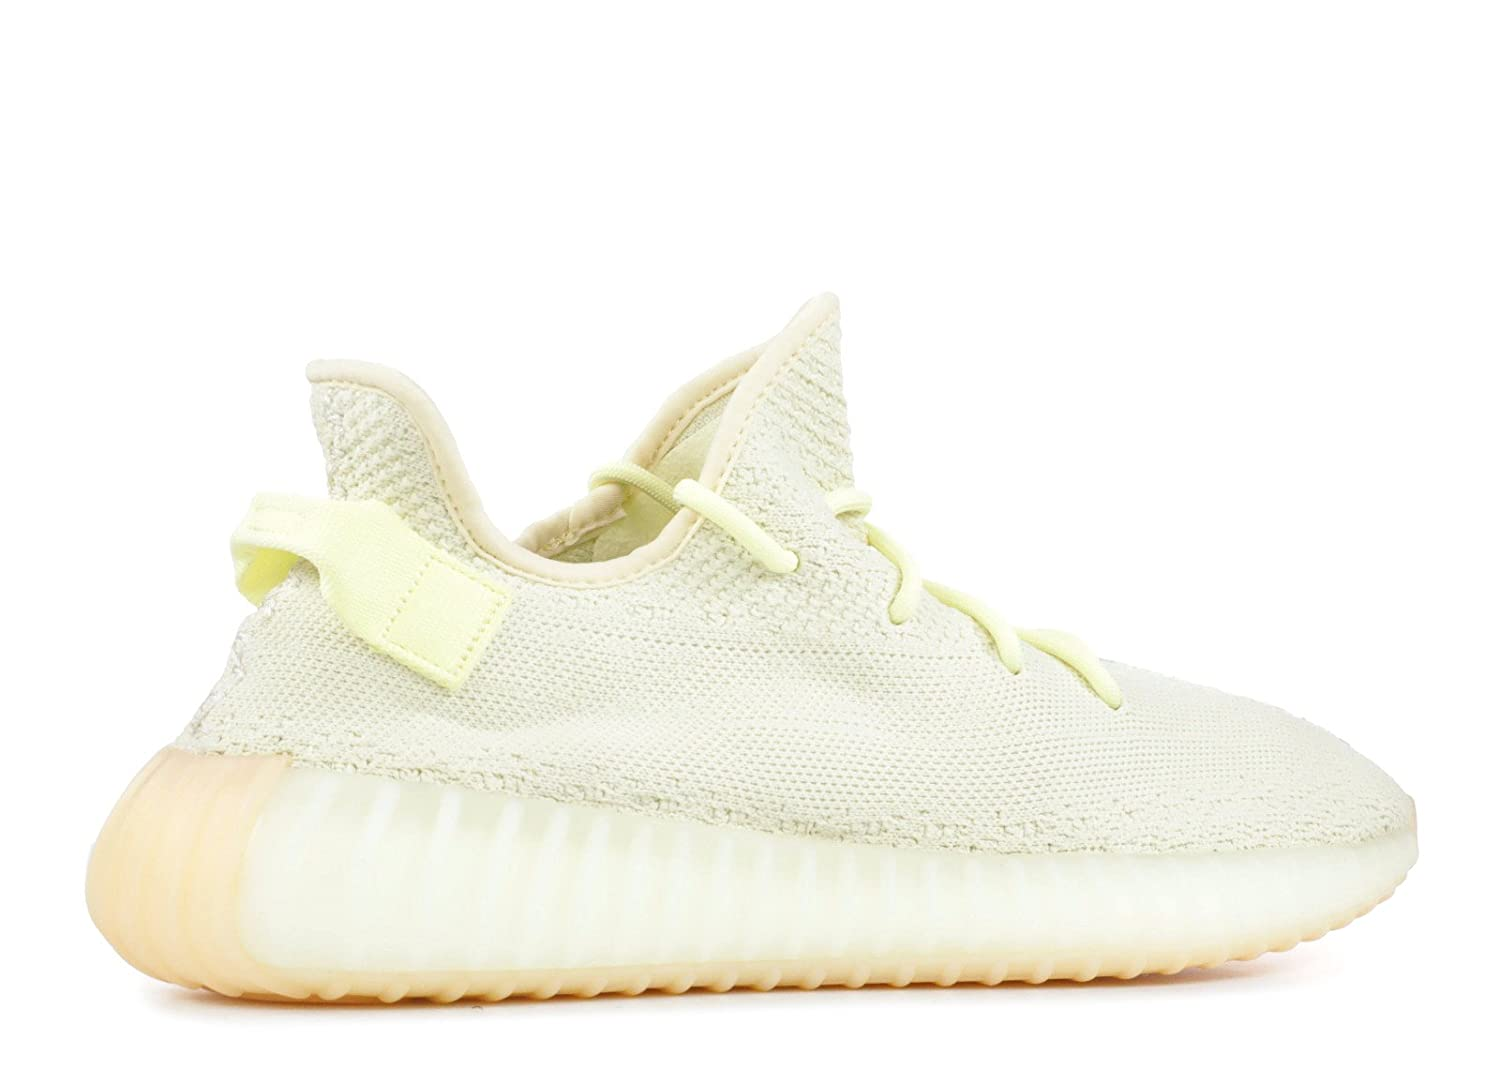 quality design 50bfb be629 adidas Yeezy Boost 350 V2 'Butter' - F36980 - Size 13.5